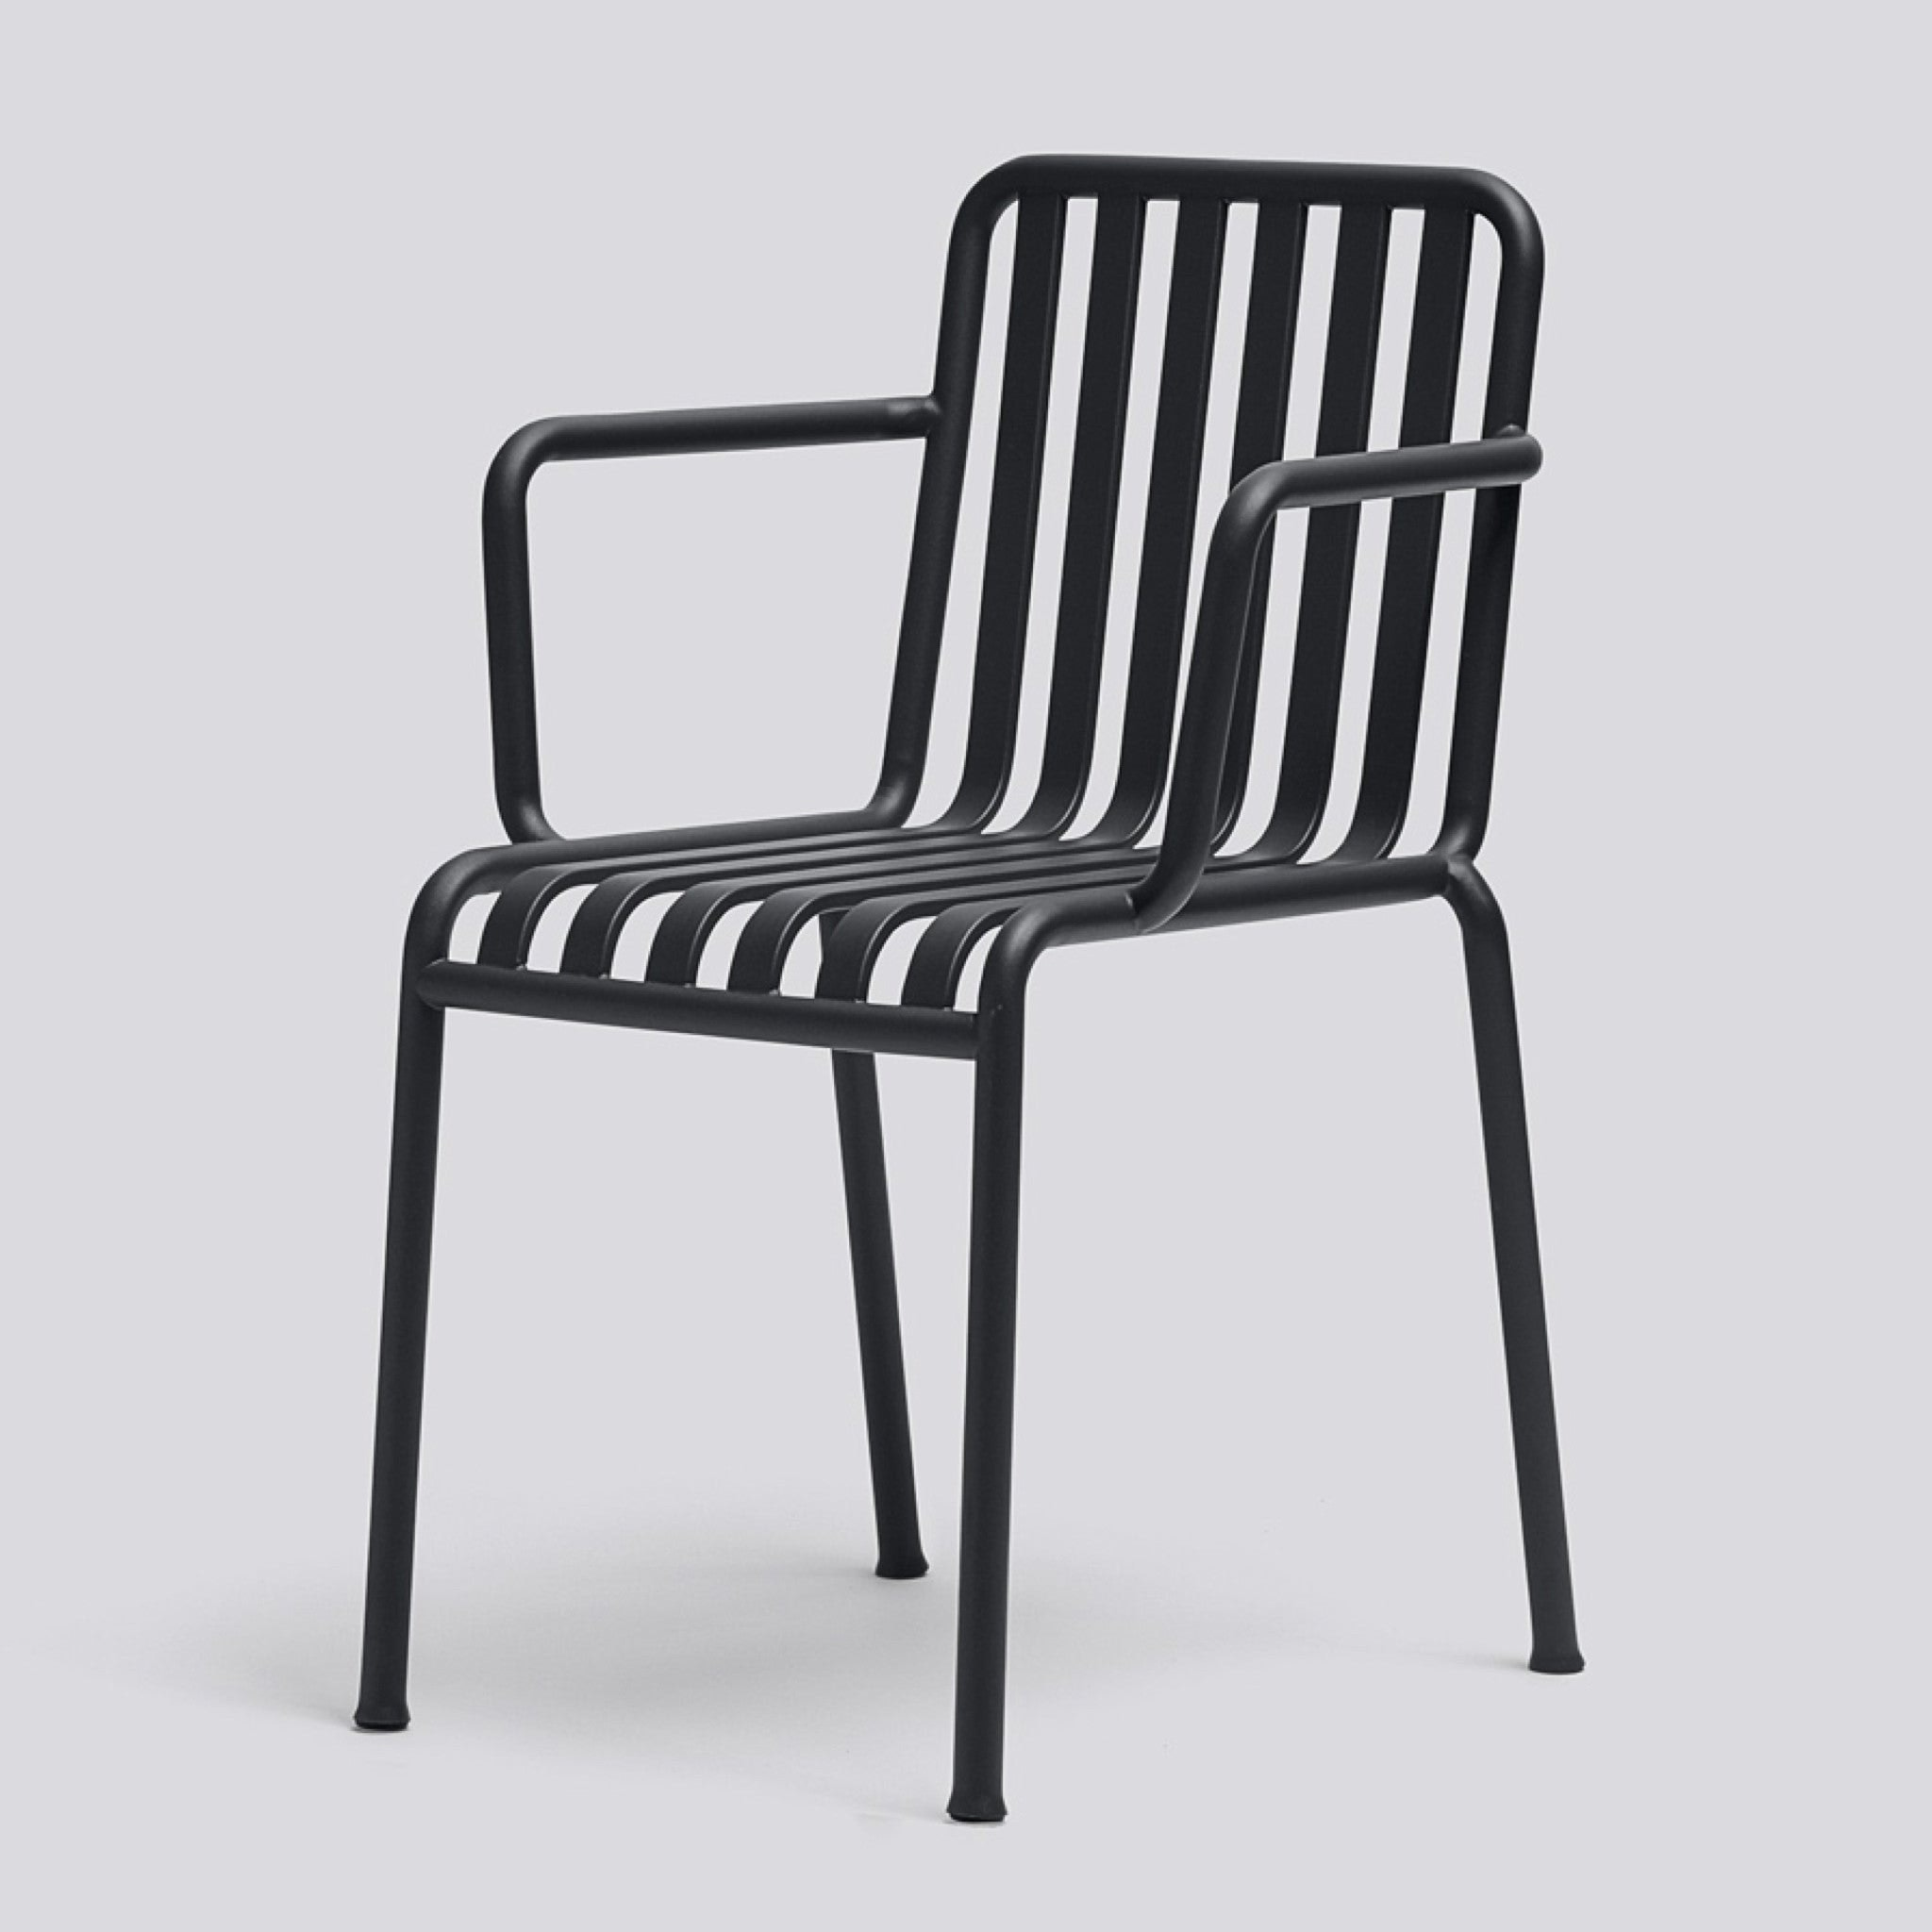 Palissade Armchair by Hay